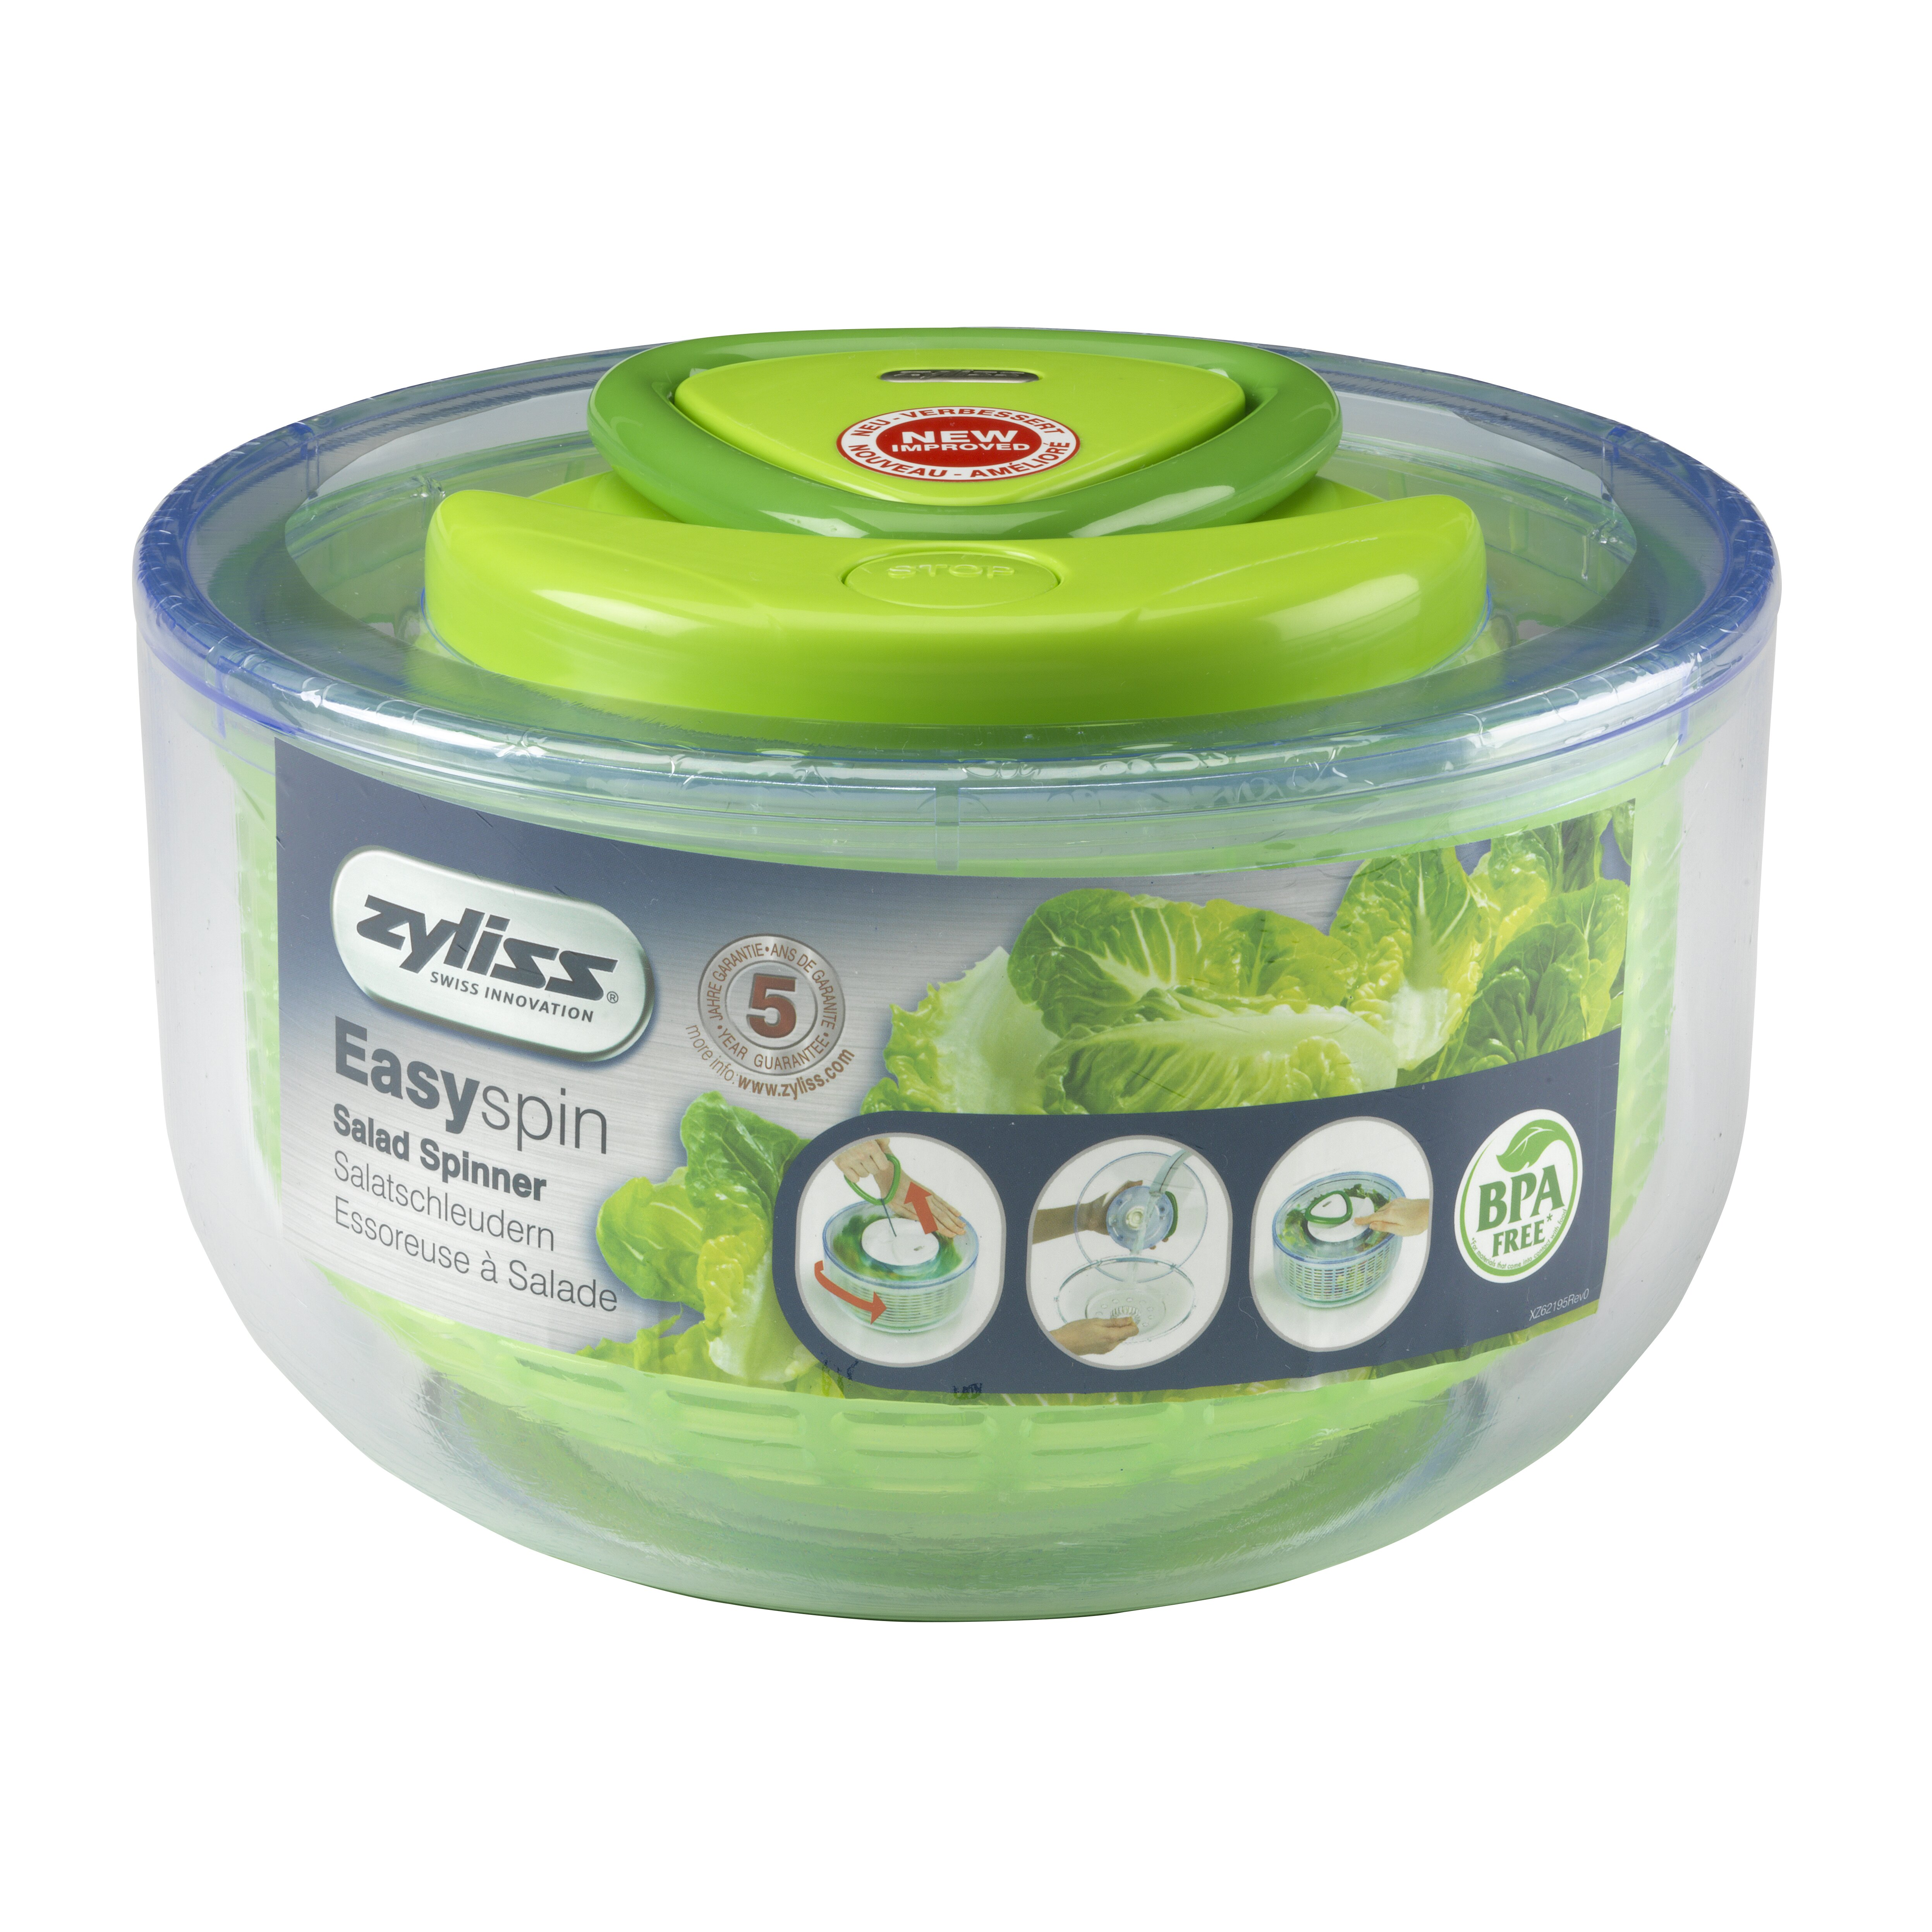 Zyliss Easy Spin Salad Spinner (4 Quart) Review